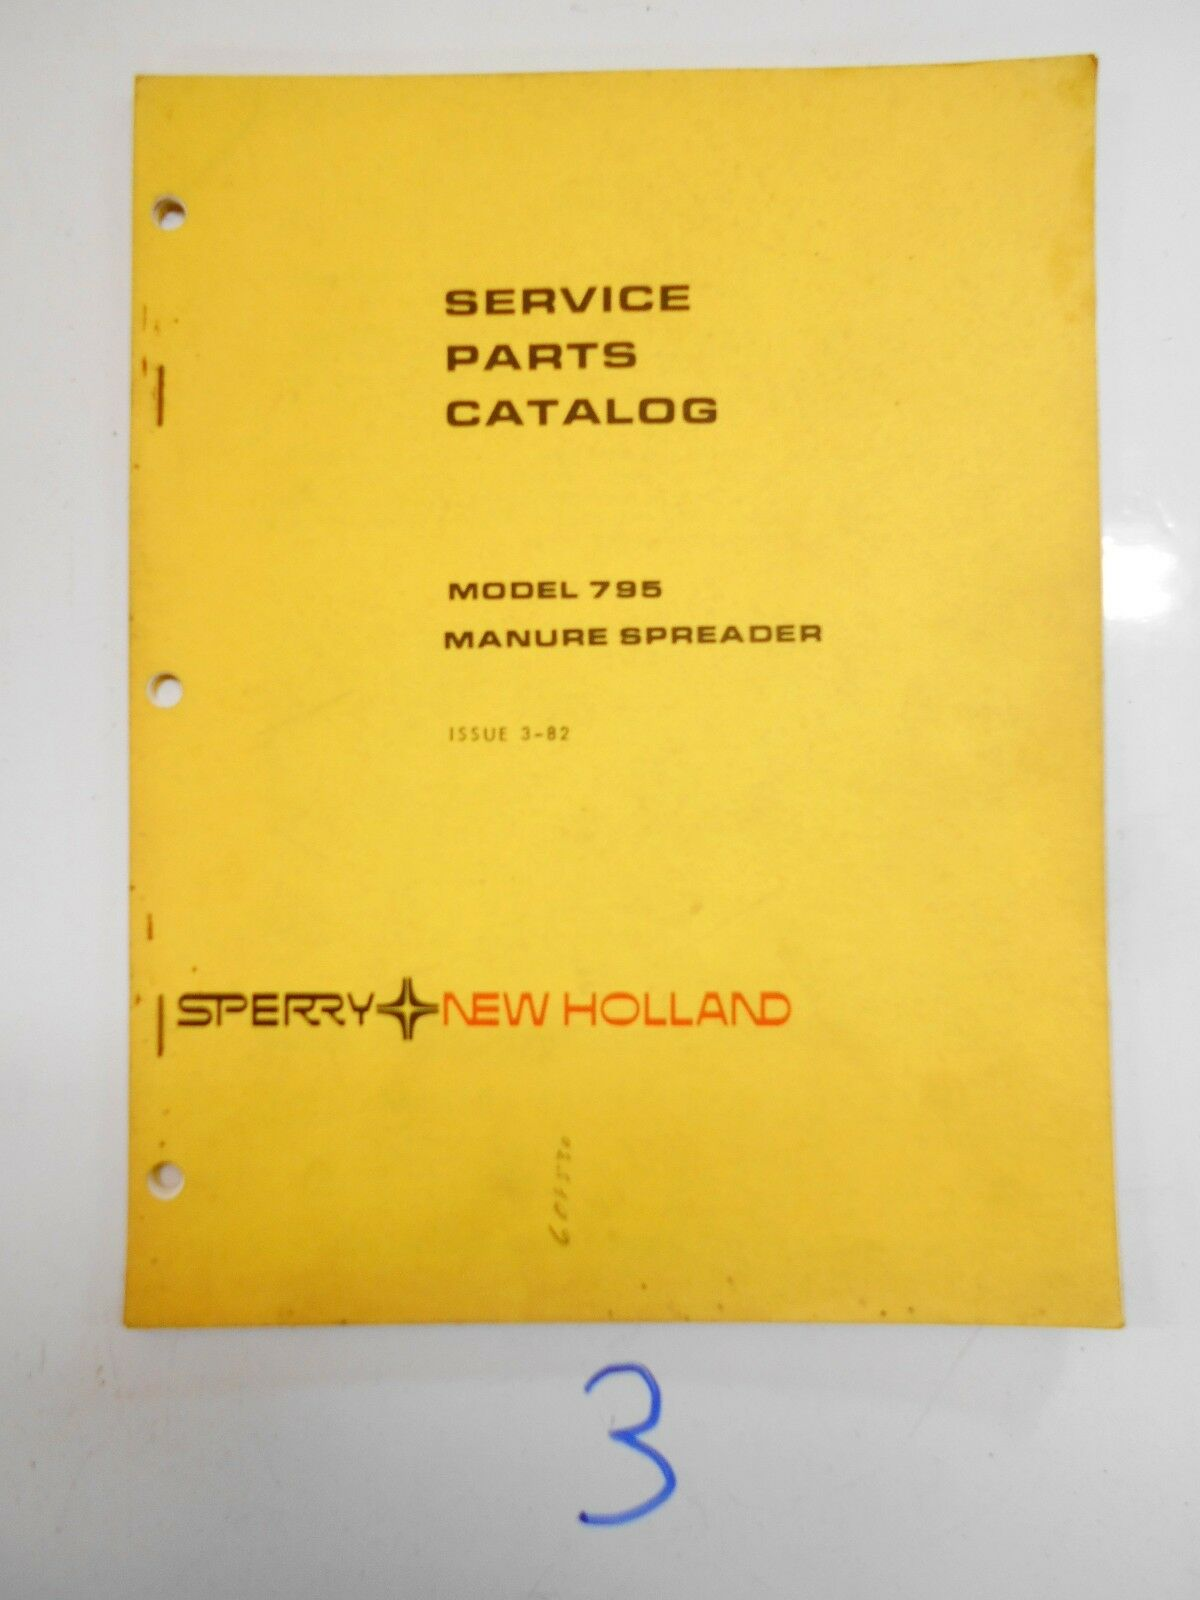 New holland 519 manure spreader manuals array new holland model 795 manure spreader service parts catalog manual 3 rh picclick com fandeluxe Image collections